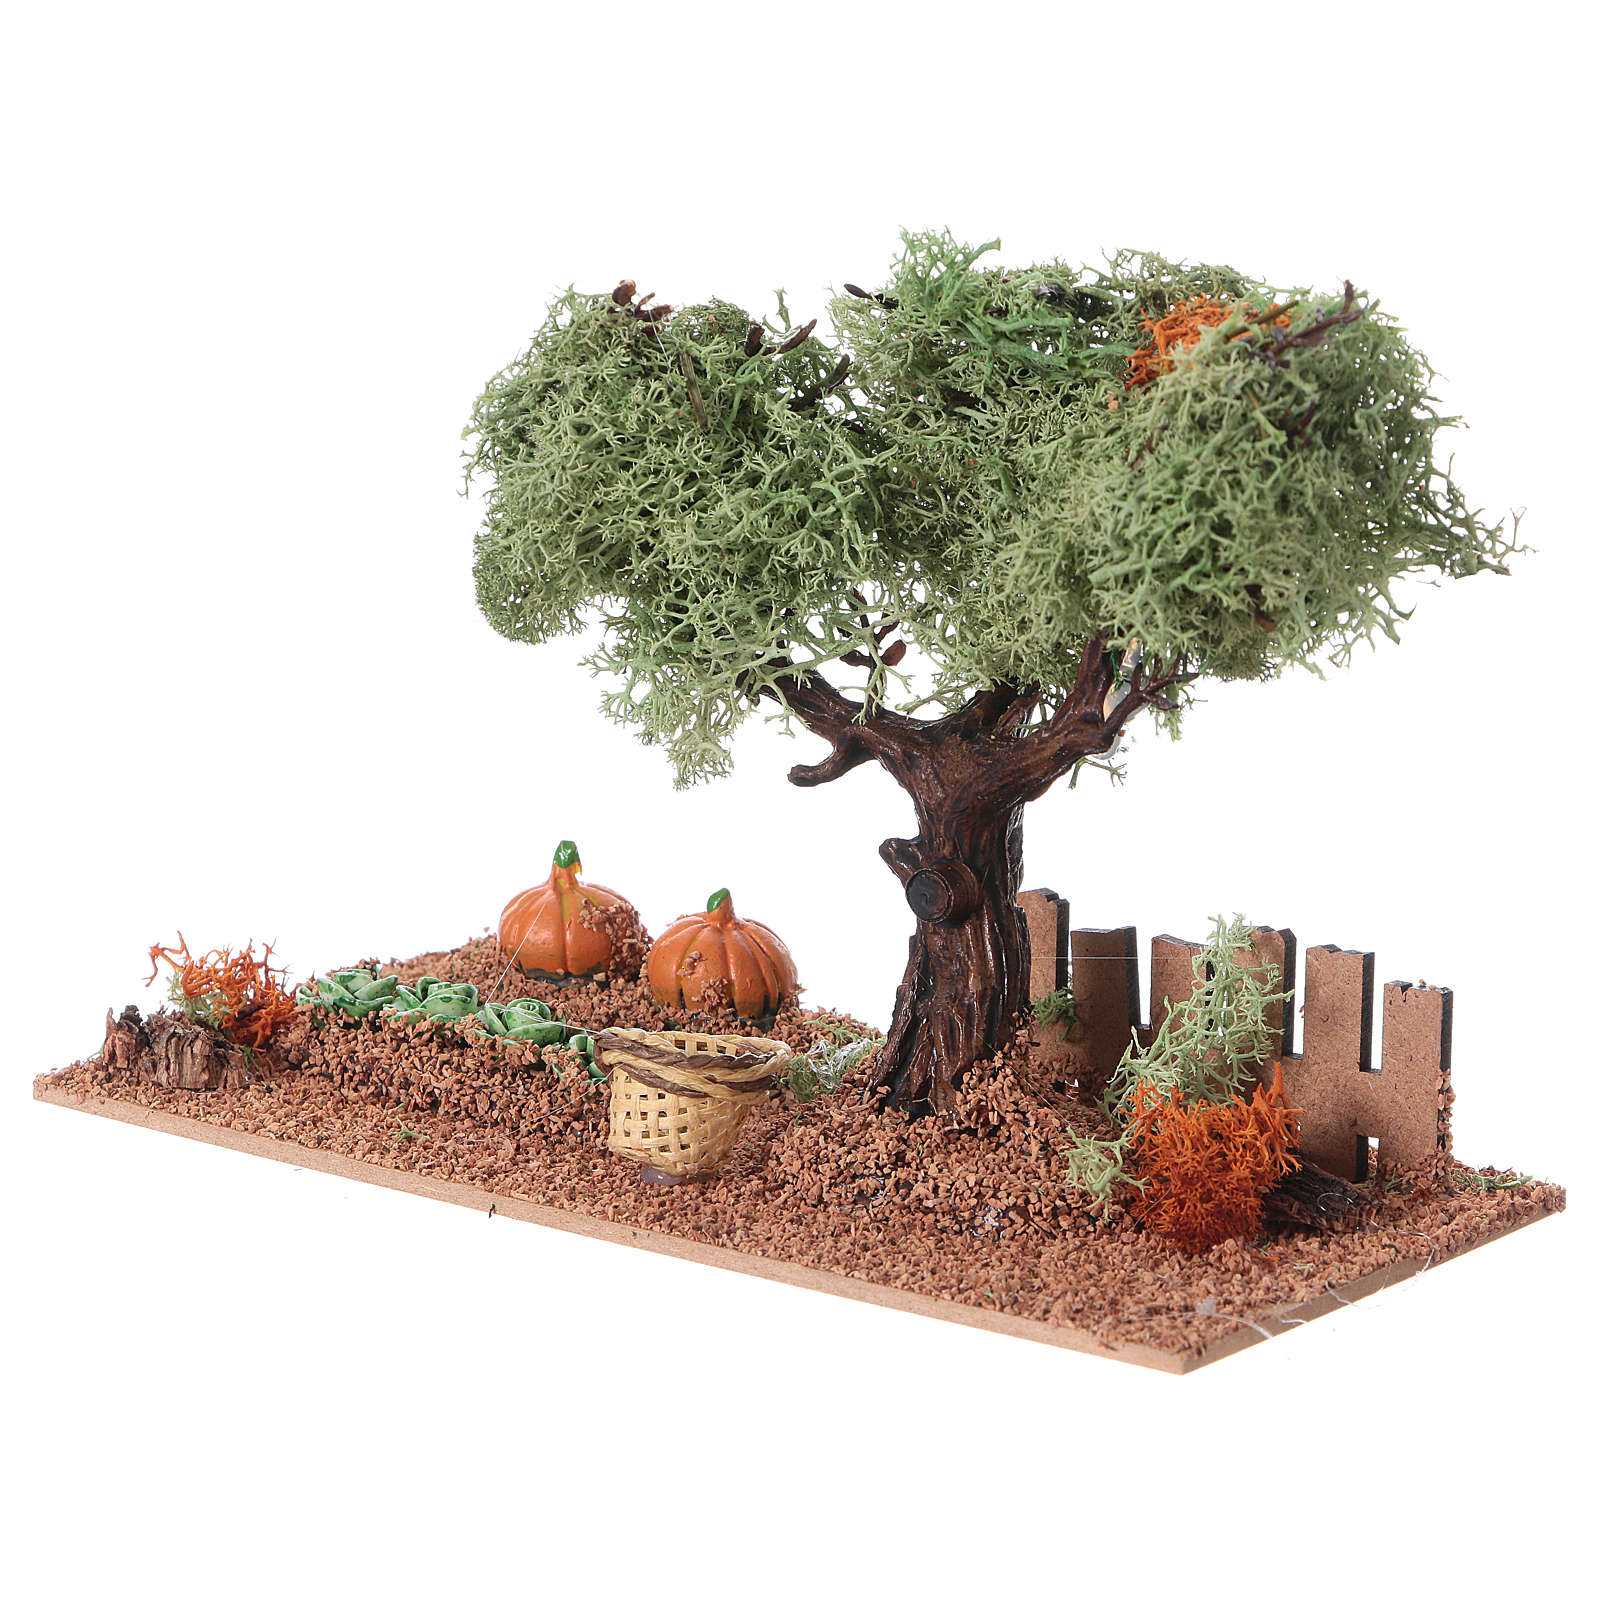 Nativity scene vegetable garden 15x20x10 cm 4